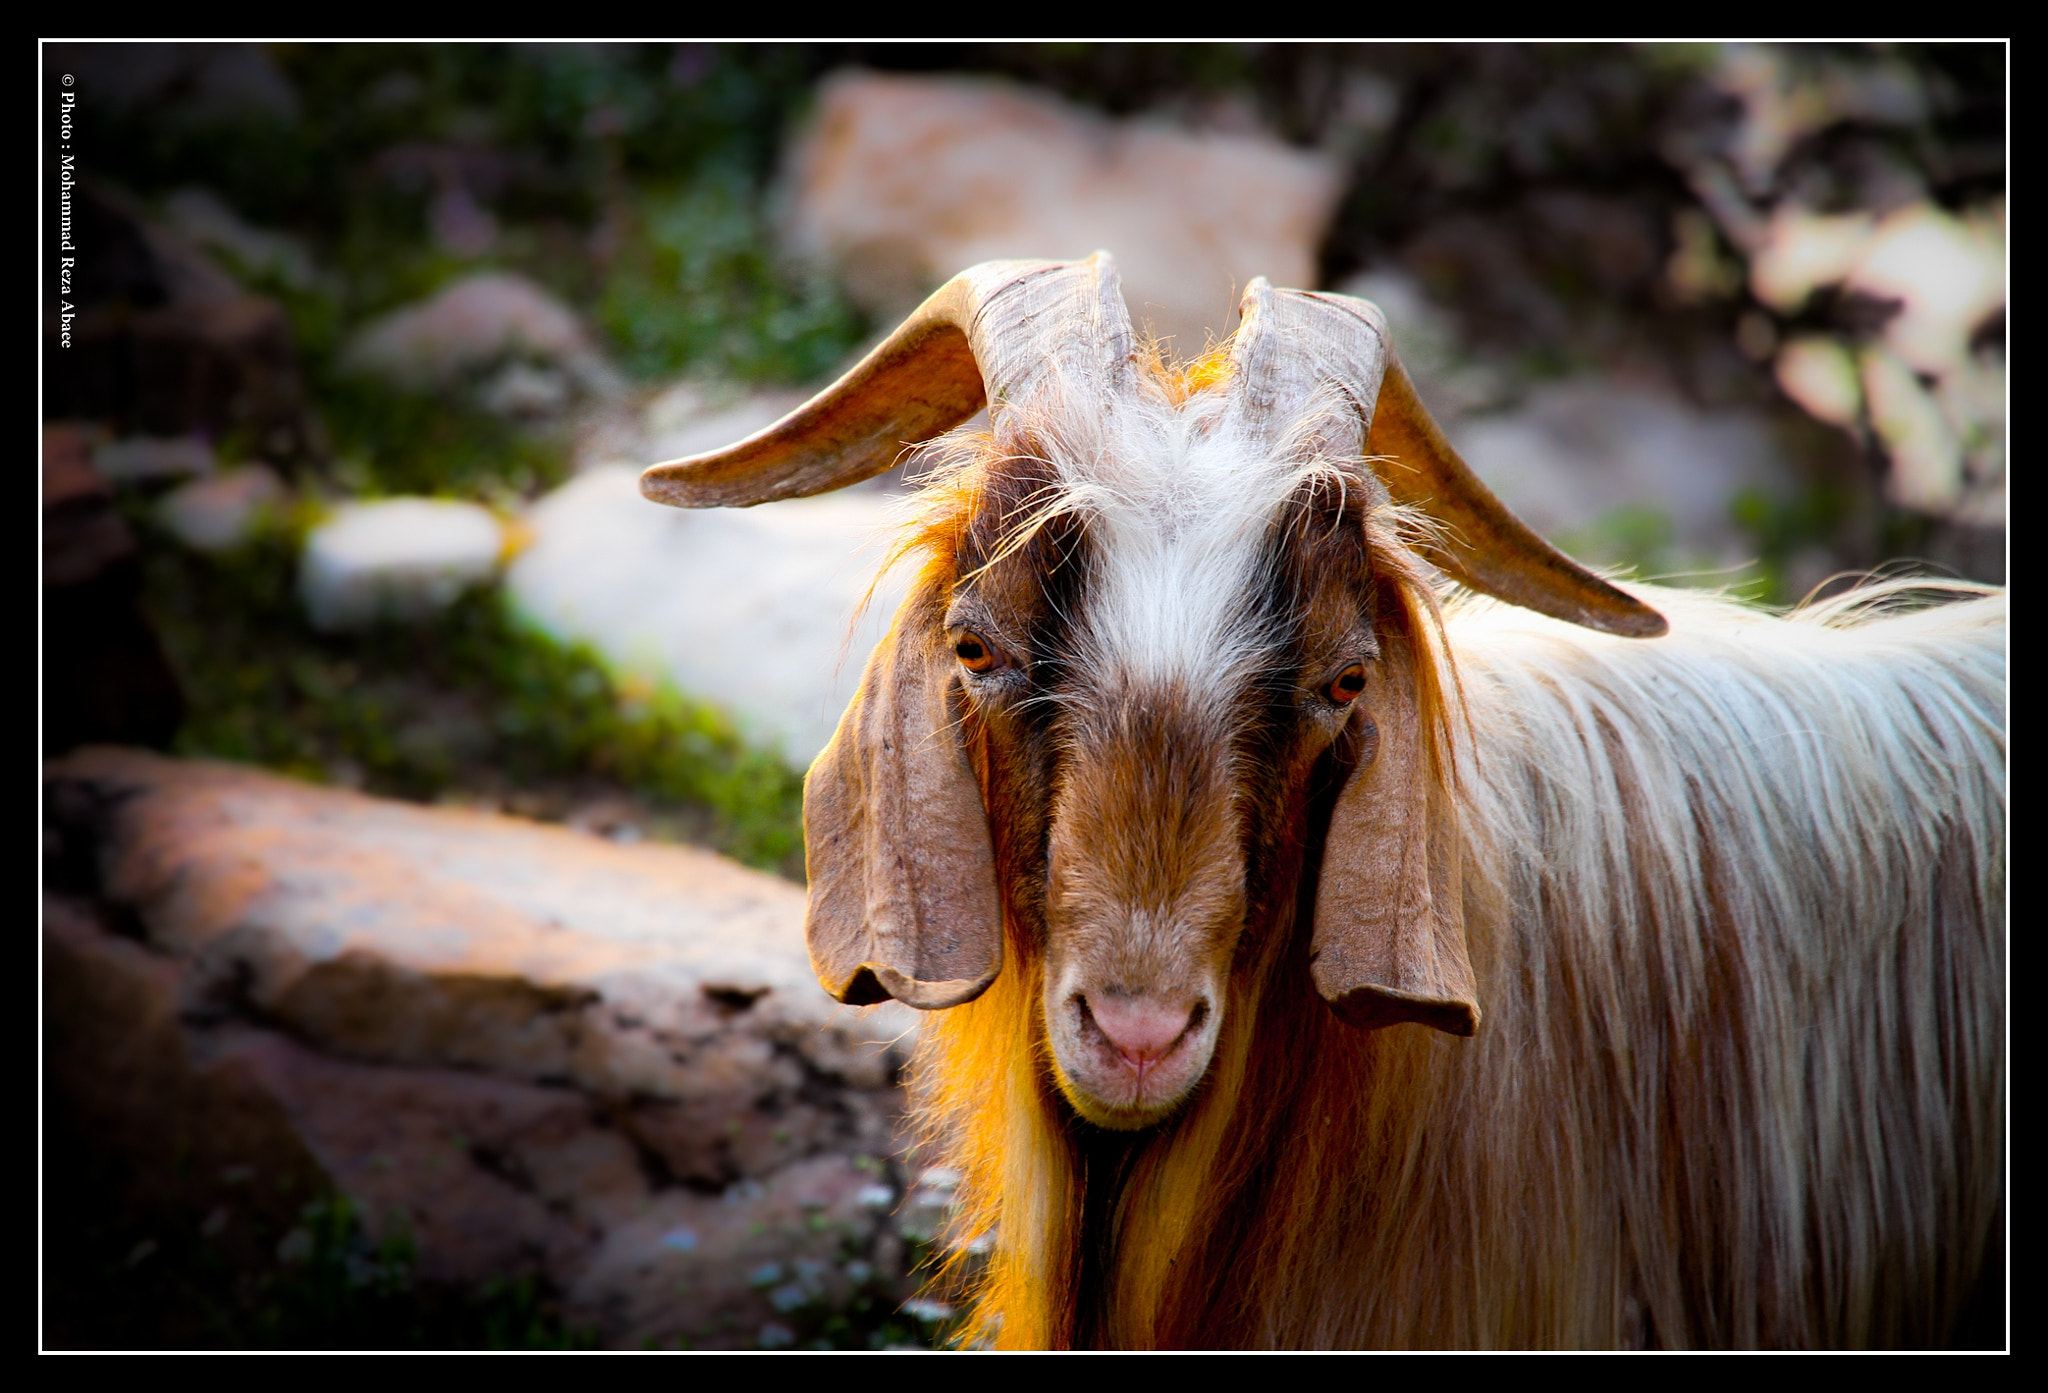 Photograph Shevi Goat by Mohammad Reza Abaee on 500px